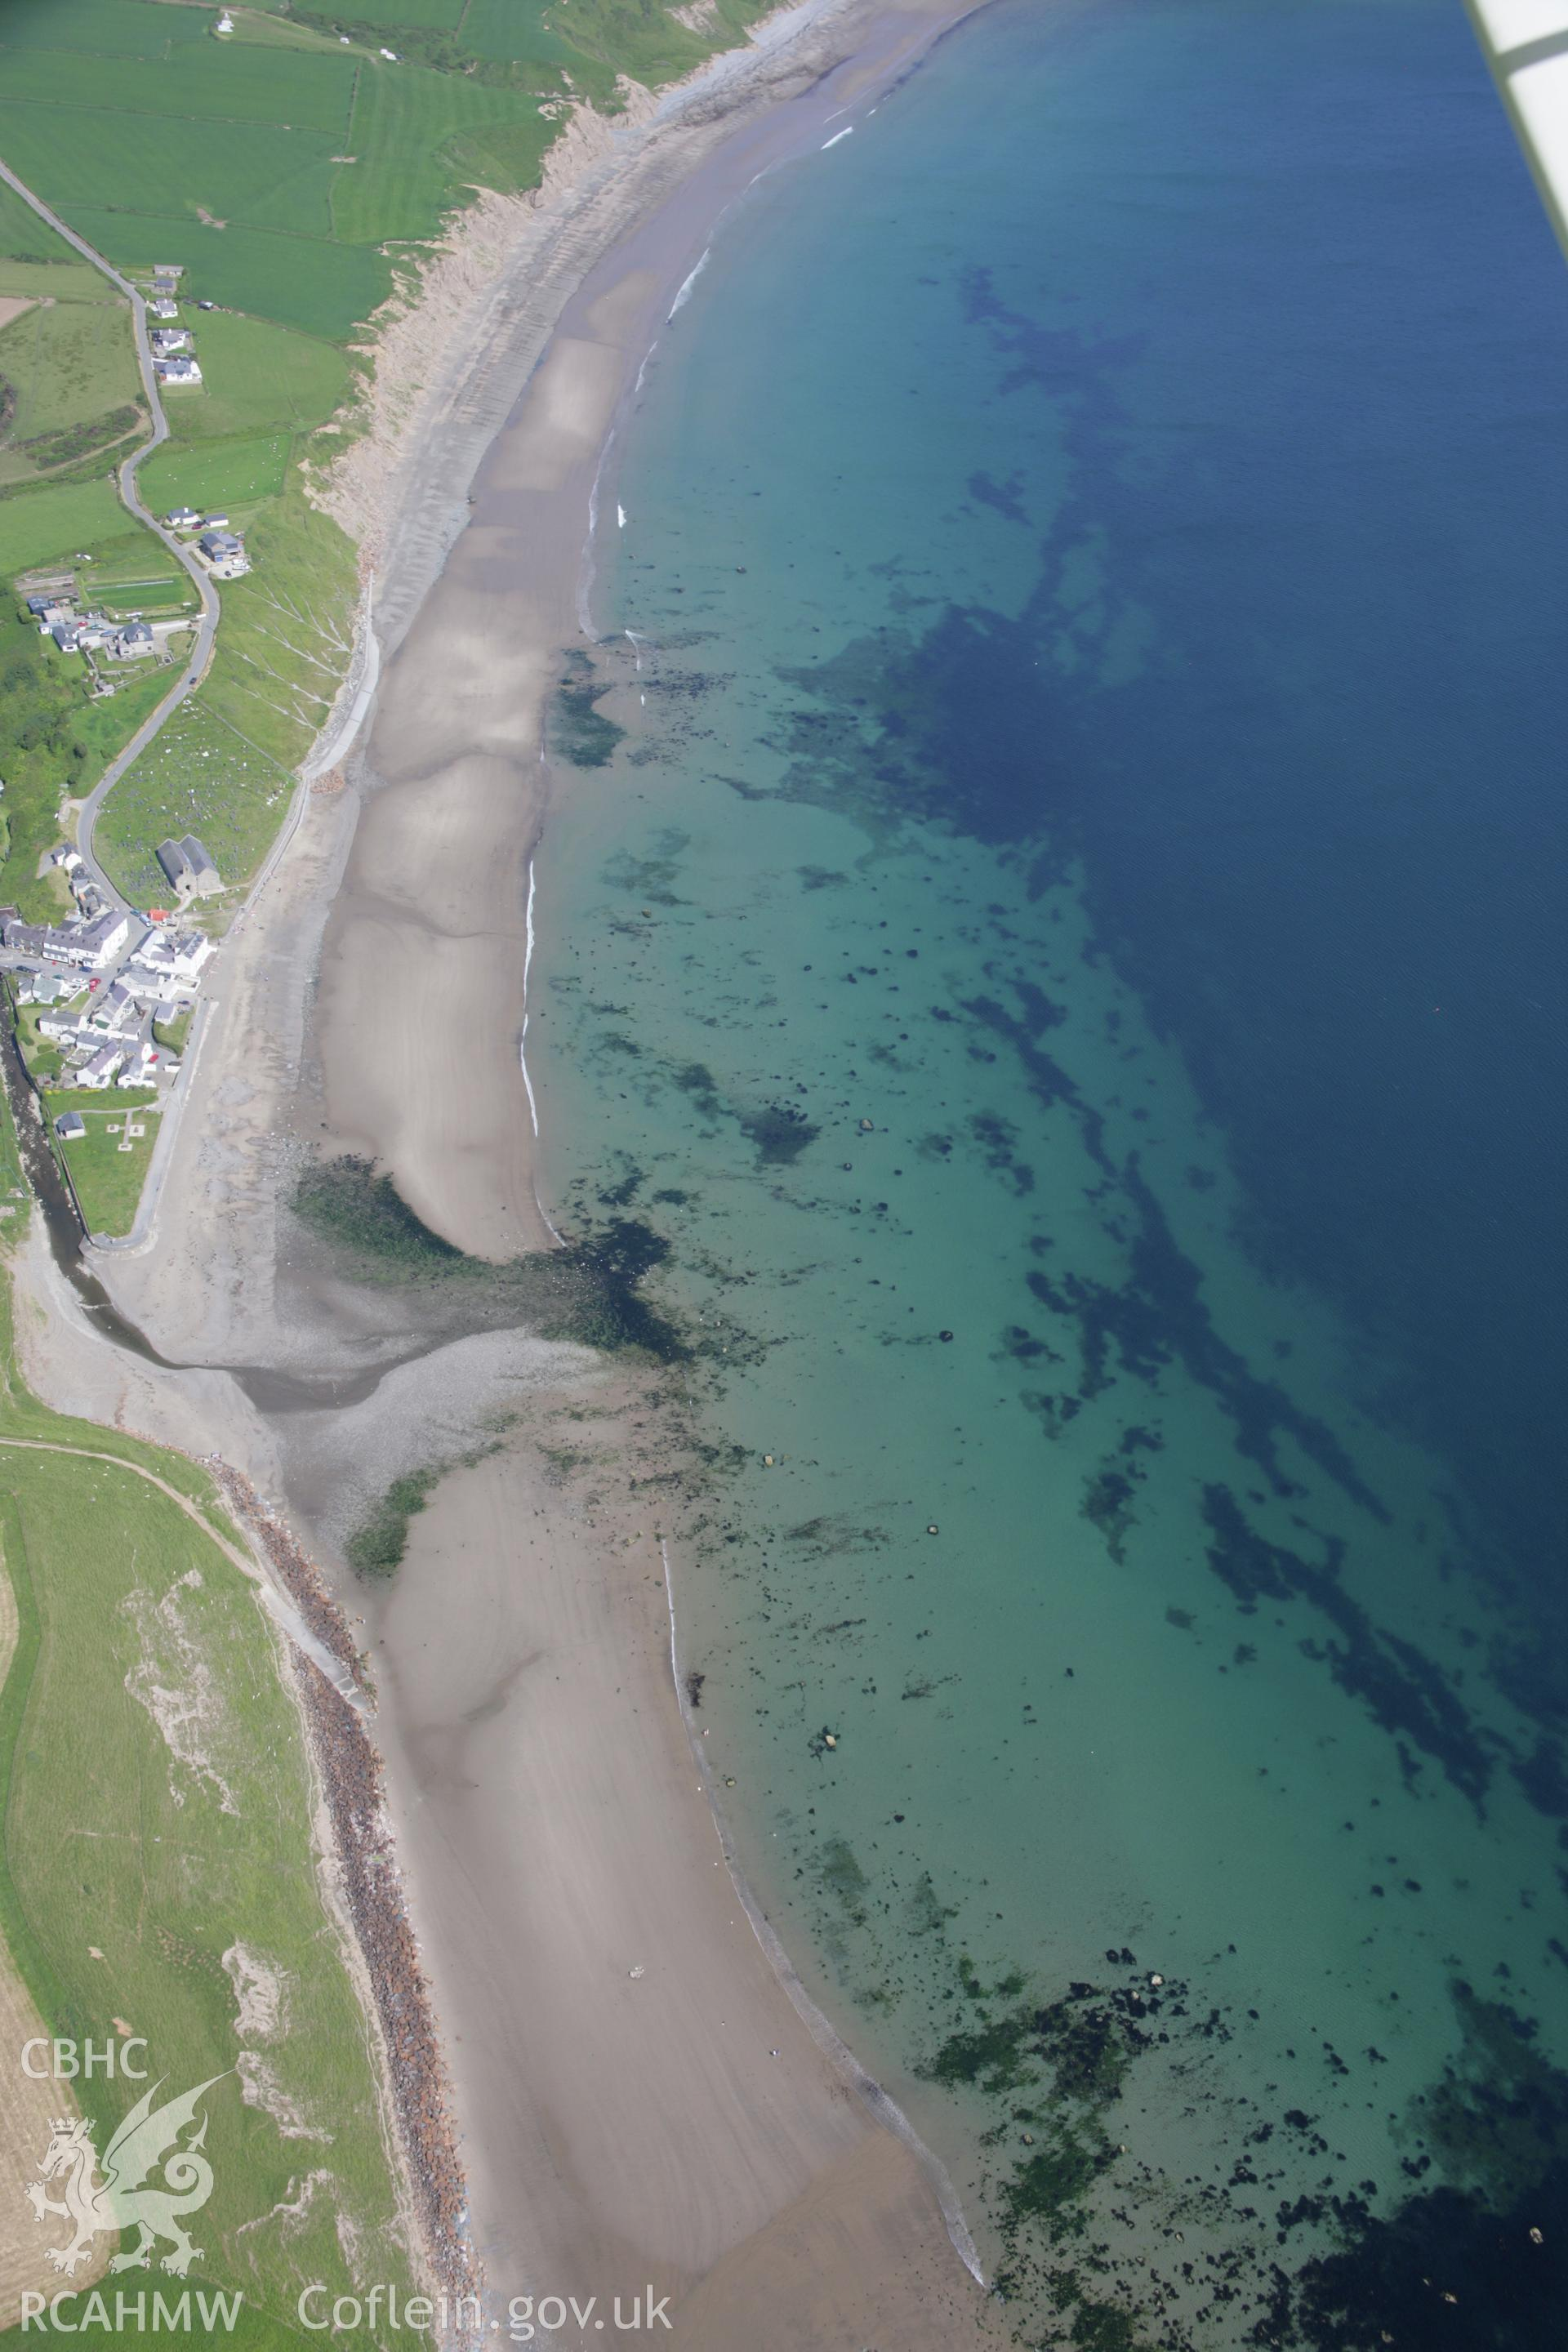 RCAHMW colour oblique aerial photograph of Aberdaron with the seafront from the west. Taken on 14 June 2006 by Toby Driver.